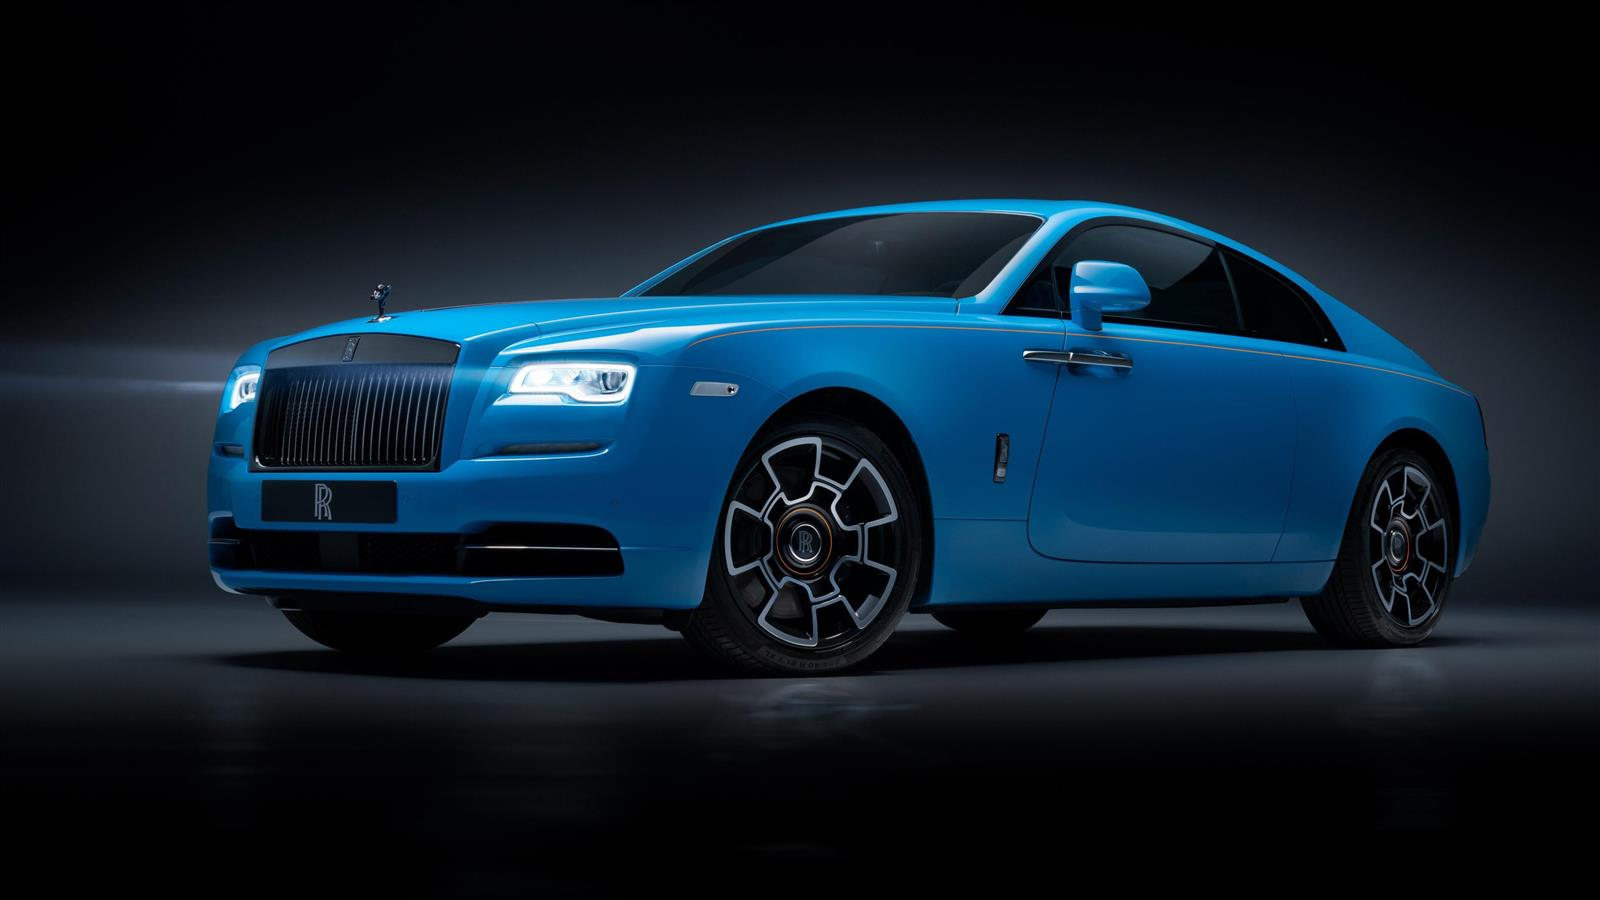 1600x900 4K Photo of 2019 Rolls Royce Wraith Black Badge Car